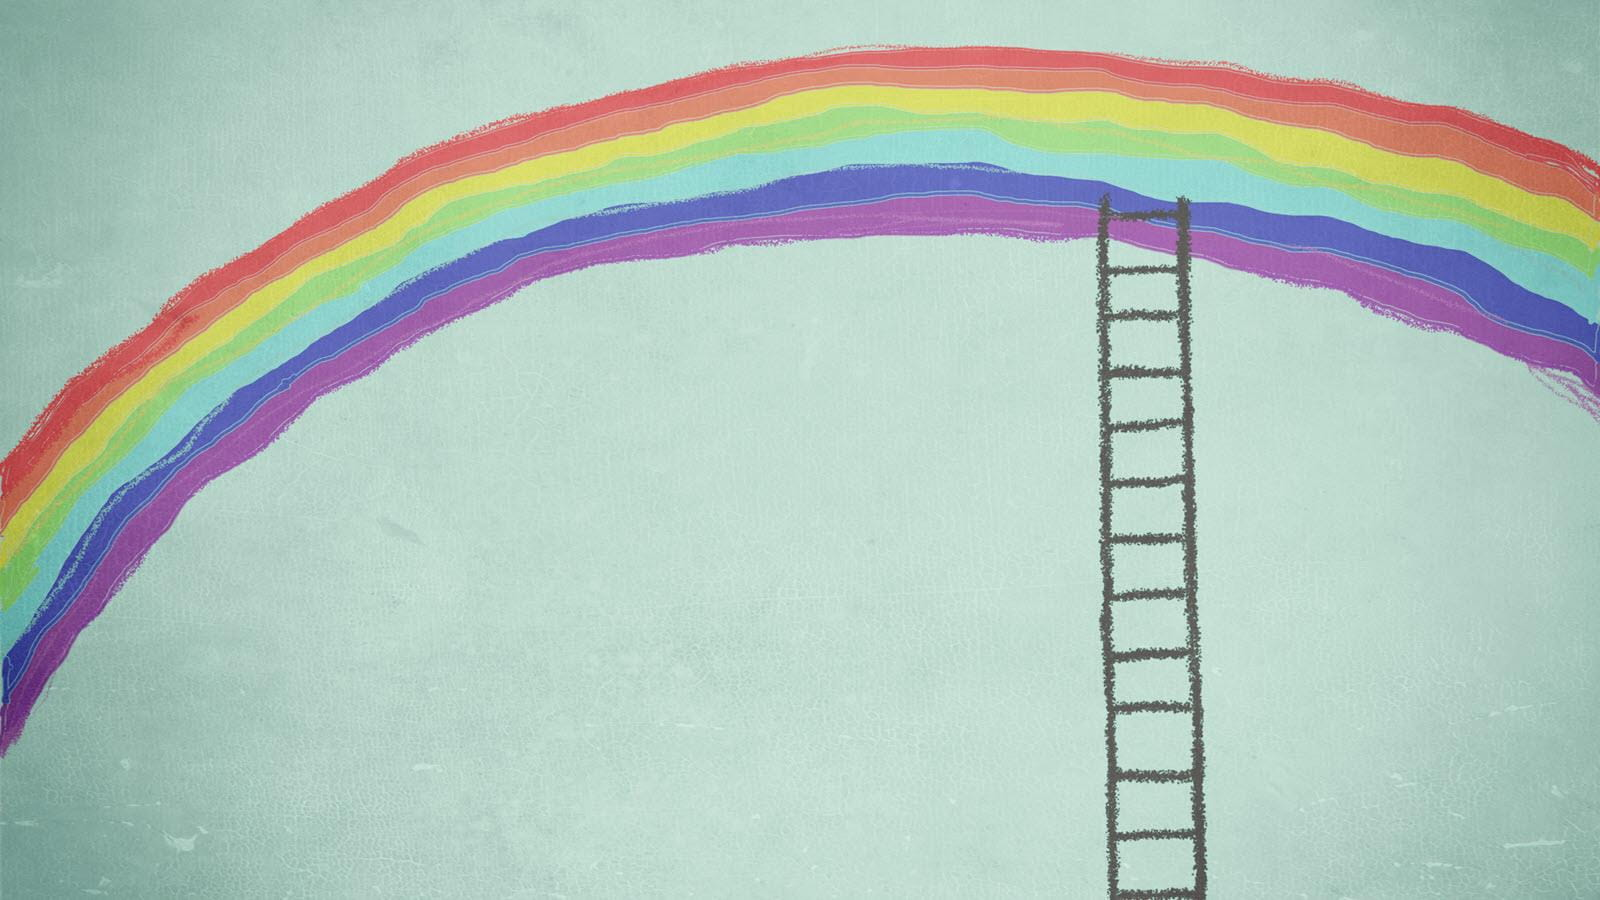 illustration of a rainbow with a ladder reaching up to it